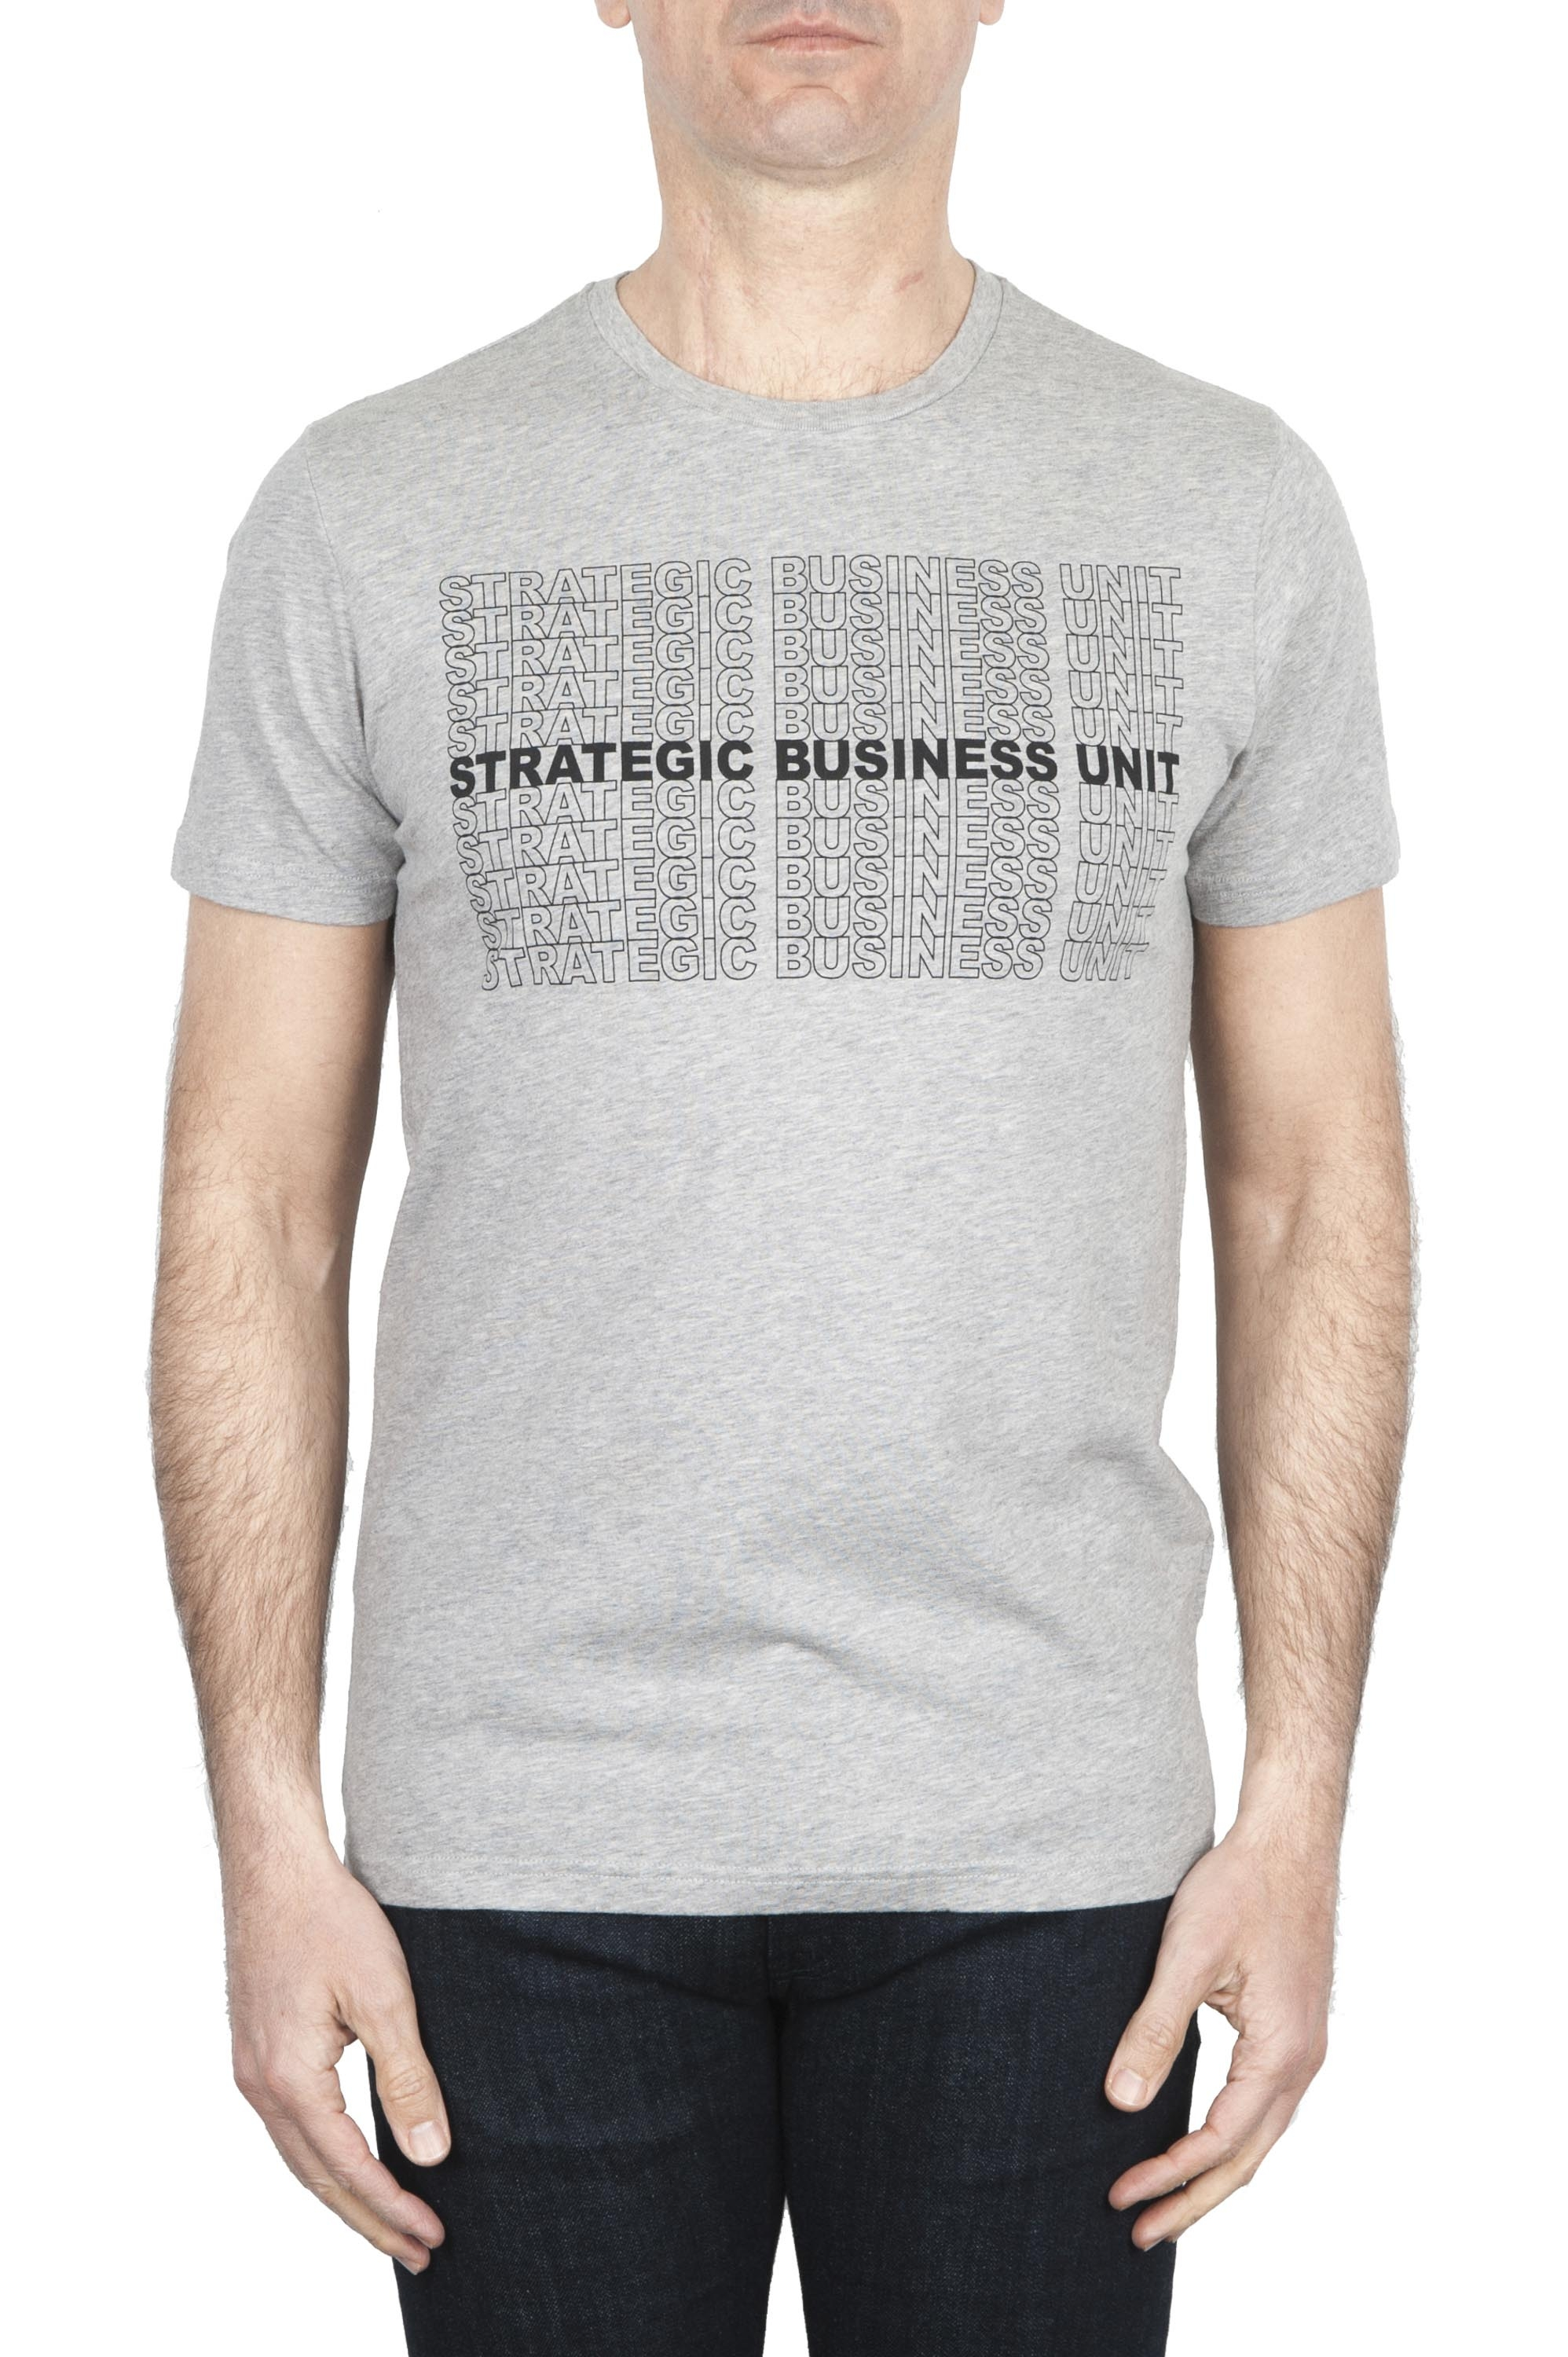 SBU 01801_2020SS Round neck mélange grey t-shirt printed by hand 01